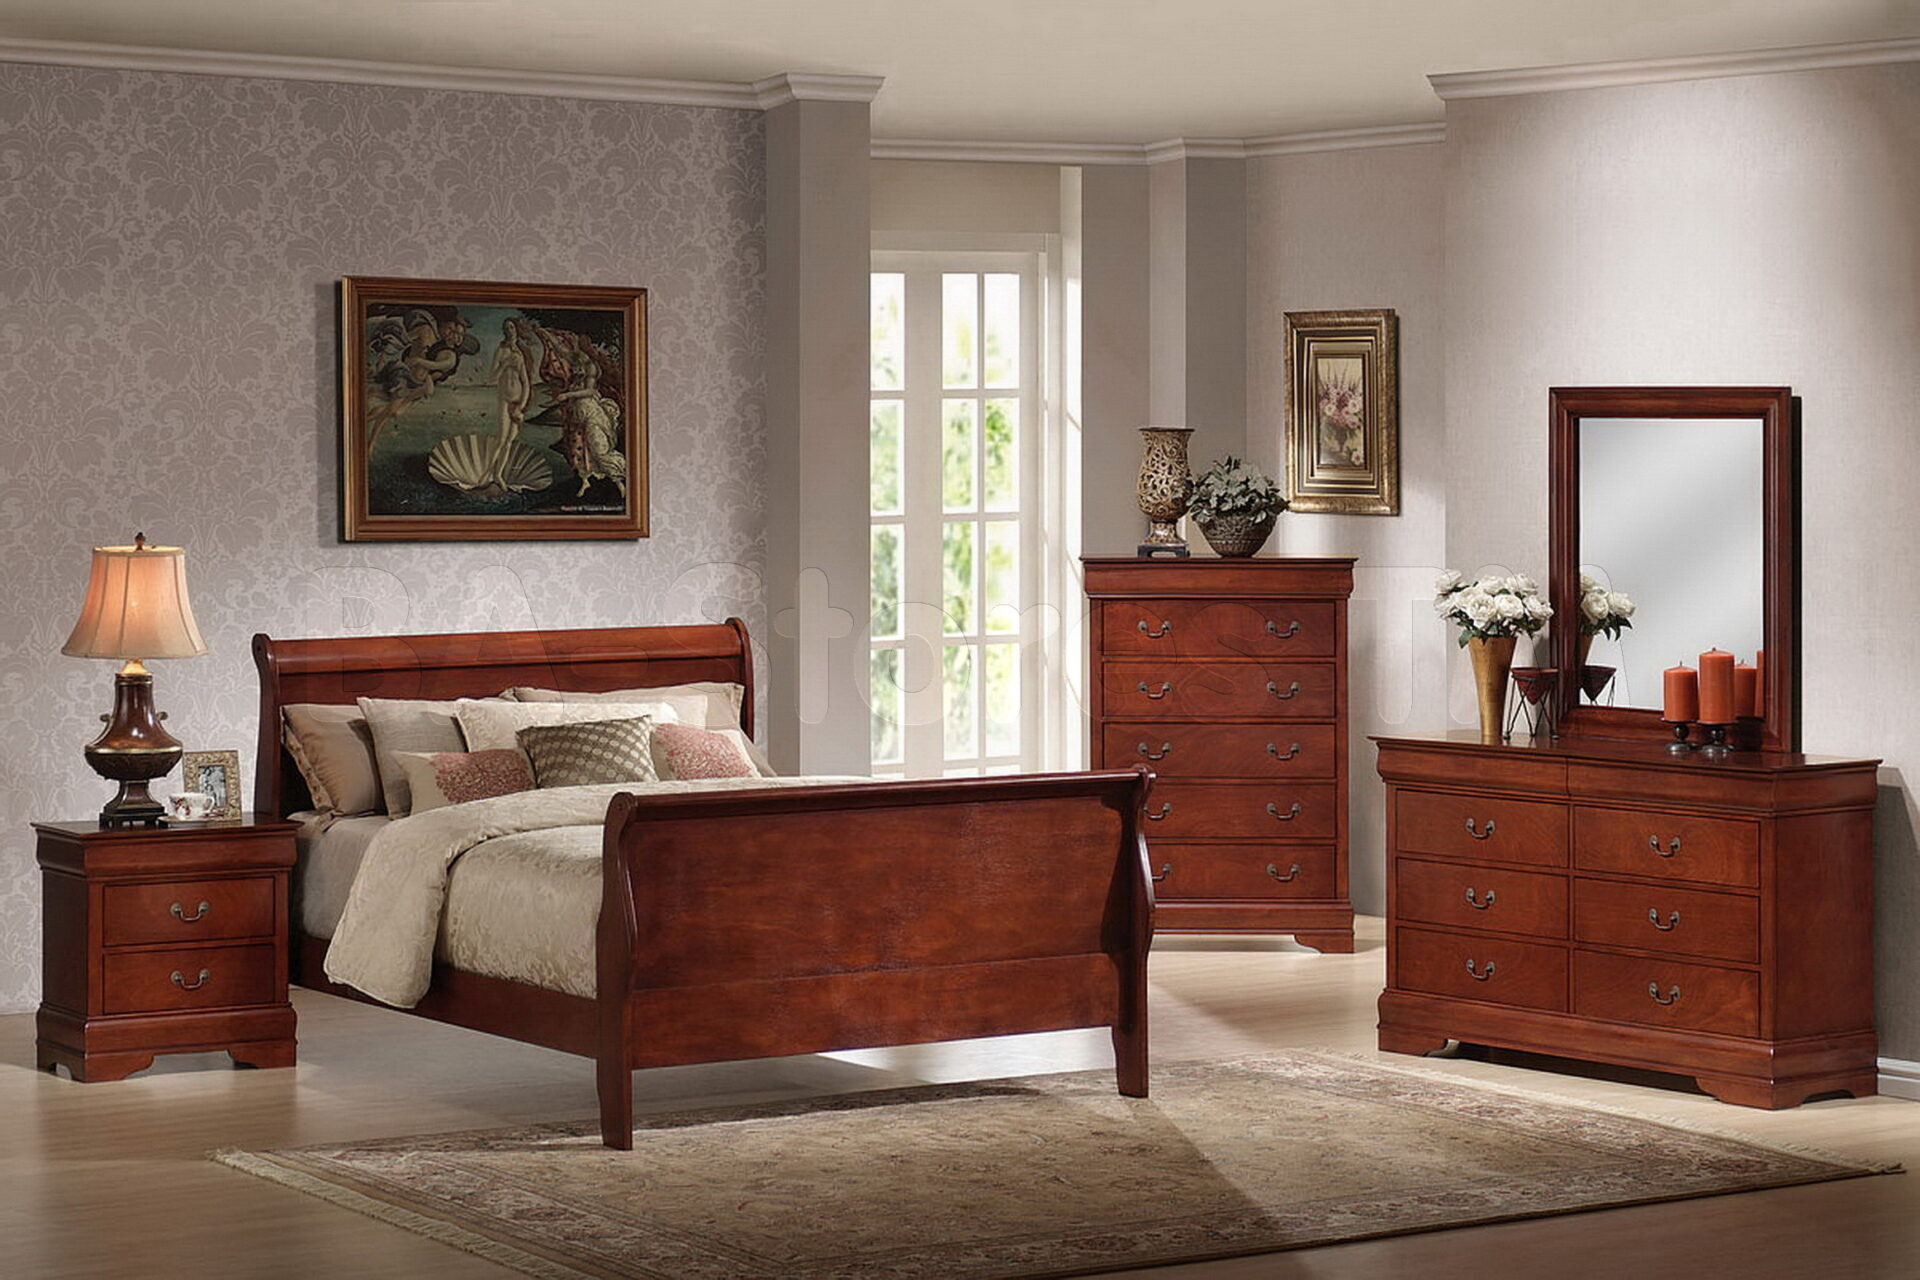 Cherry wood furniture bedroom decor ideas archives for Bedroom ideas with furniture